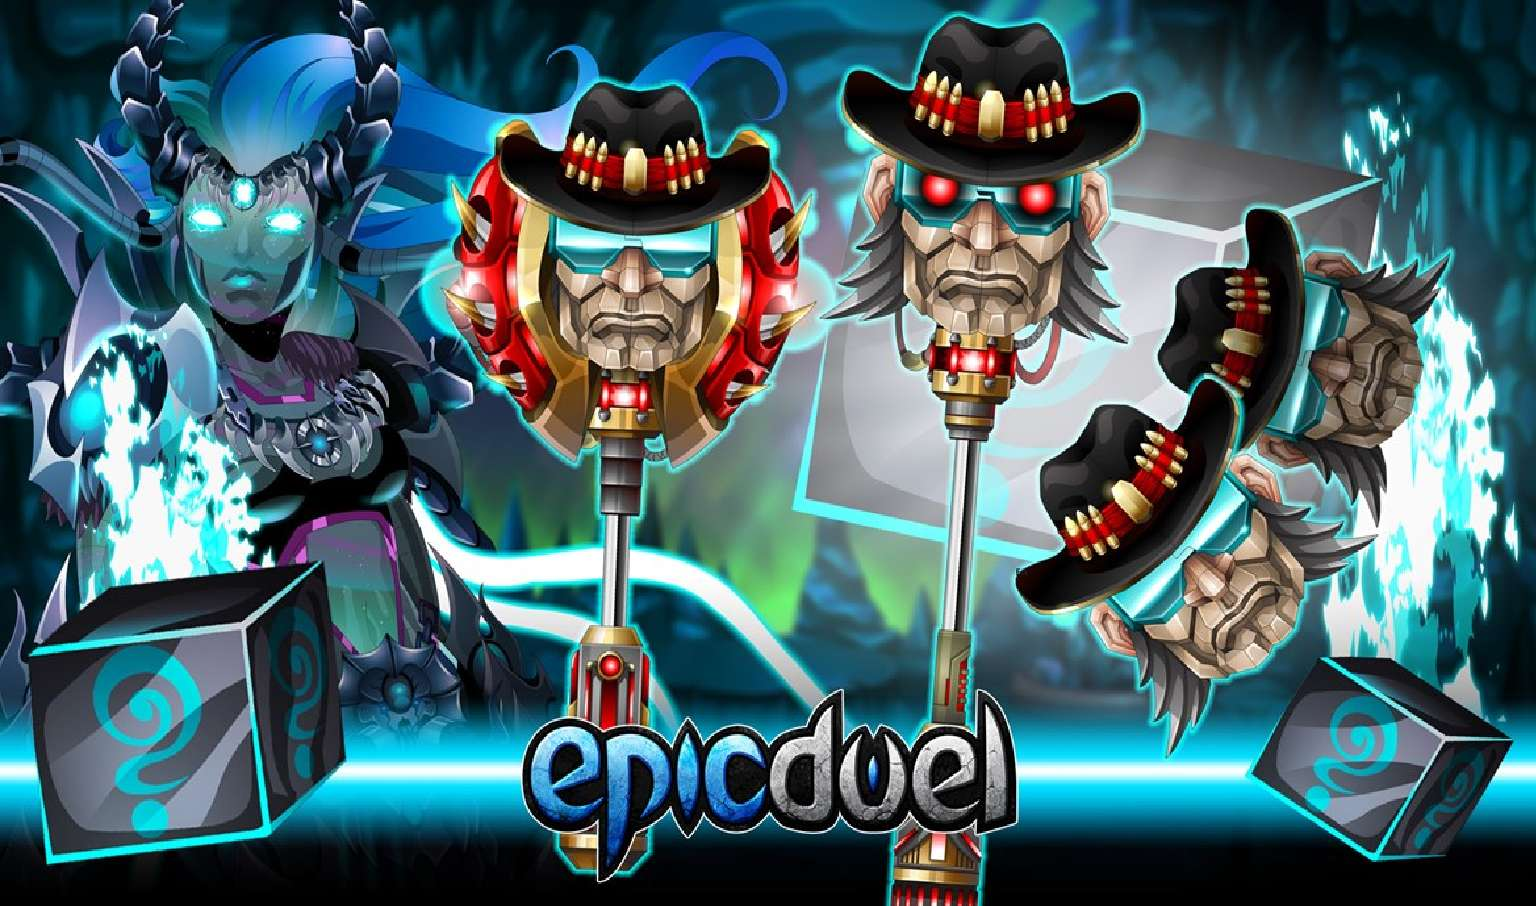 EpicDuel Opens The Silver Secret Packages And Grants Some Balance Changes To The Game